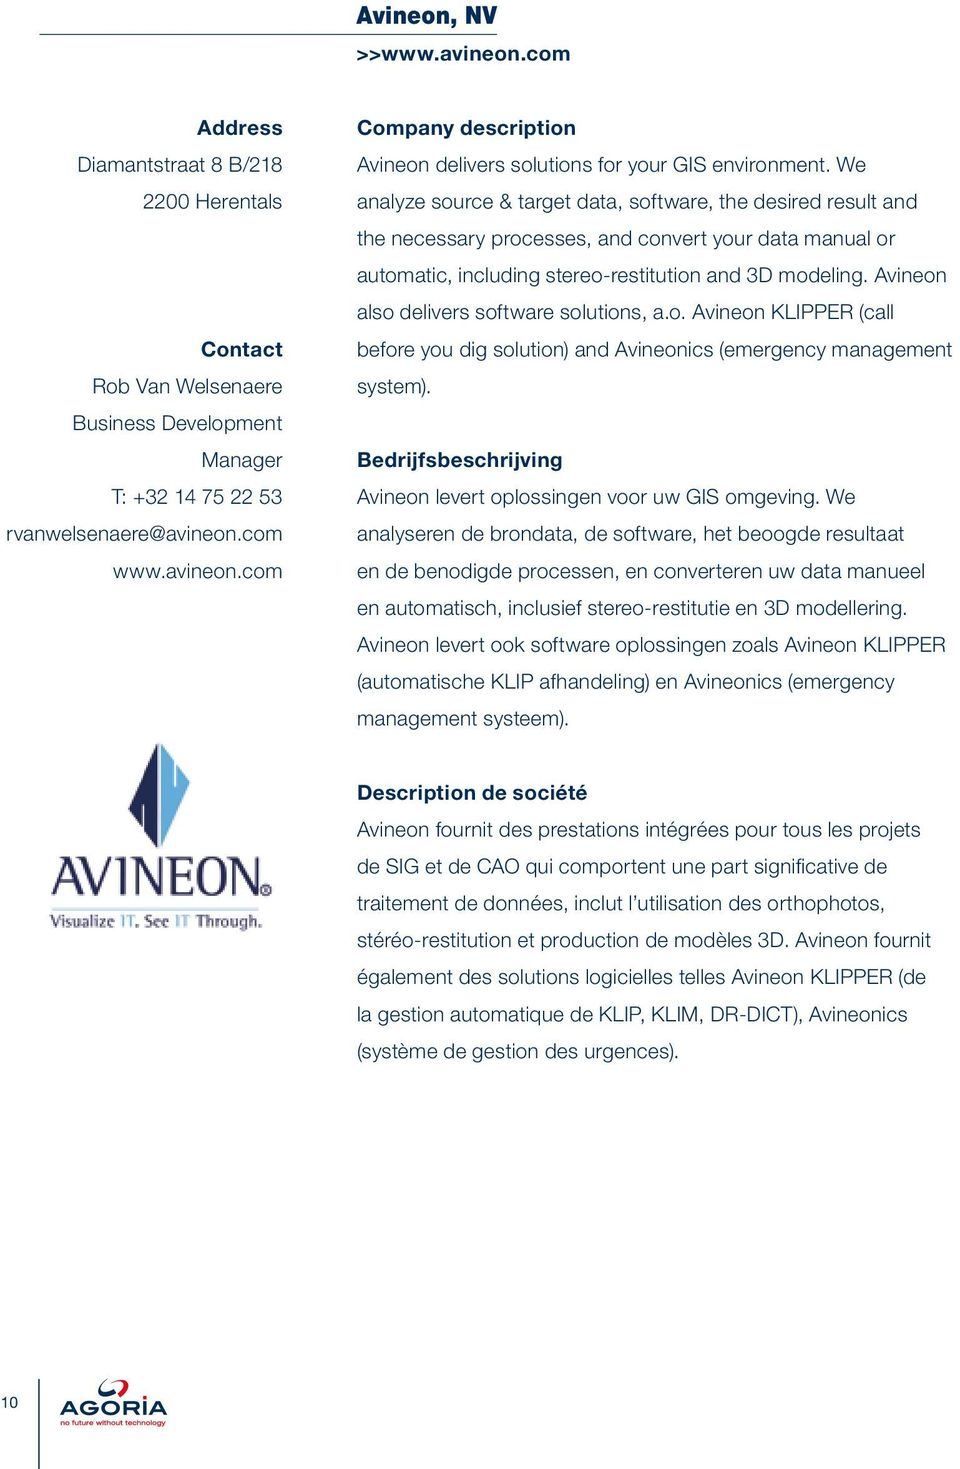 Avineon also delivers software solutions, a.o. Avineon KLIPPER (call before you dig solution) and Avineonics (emergency management system).